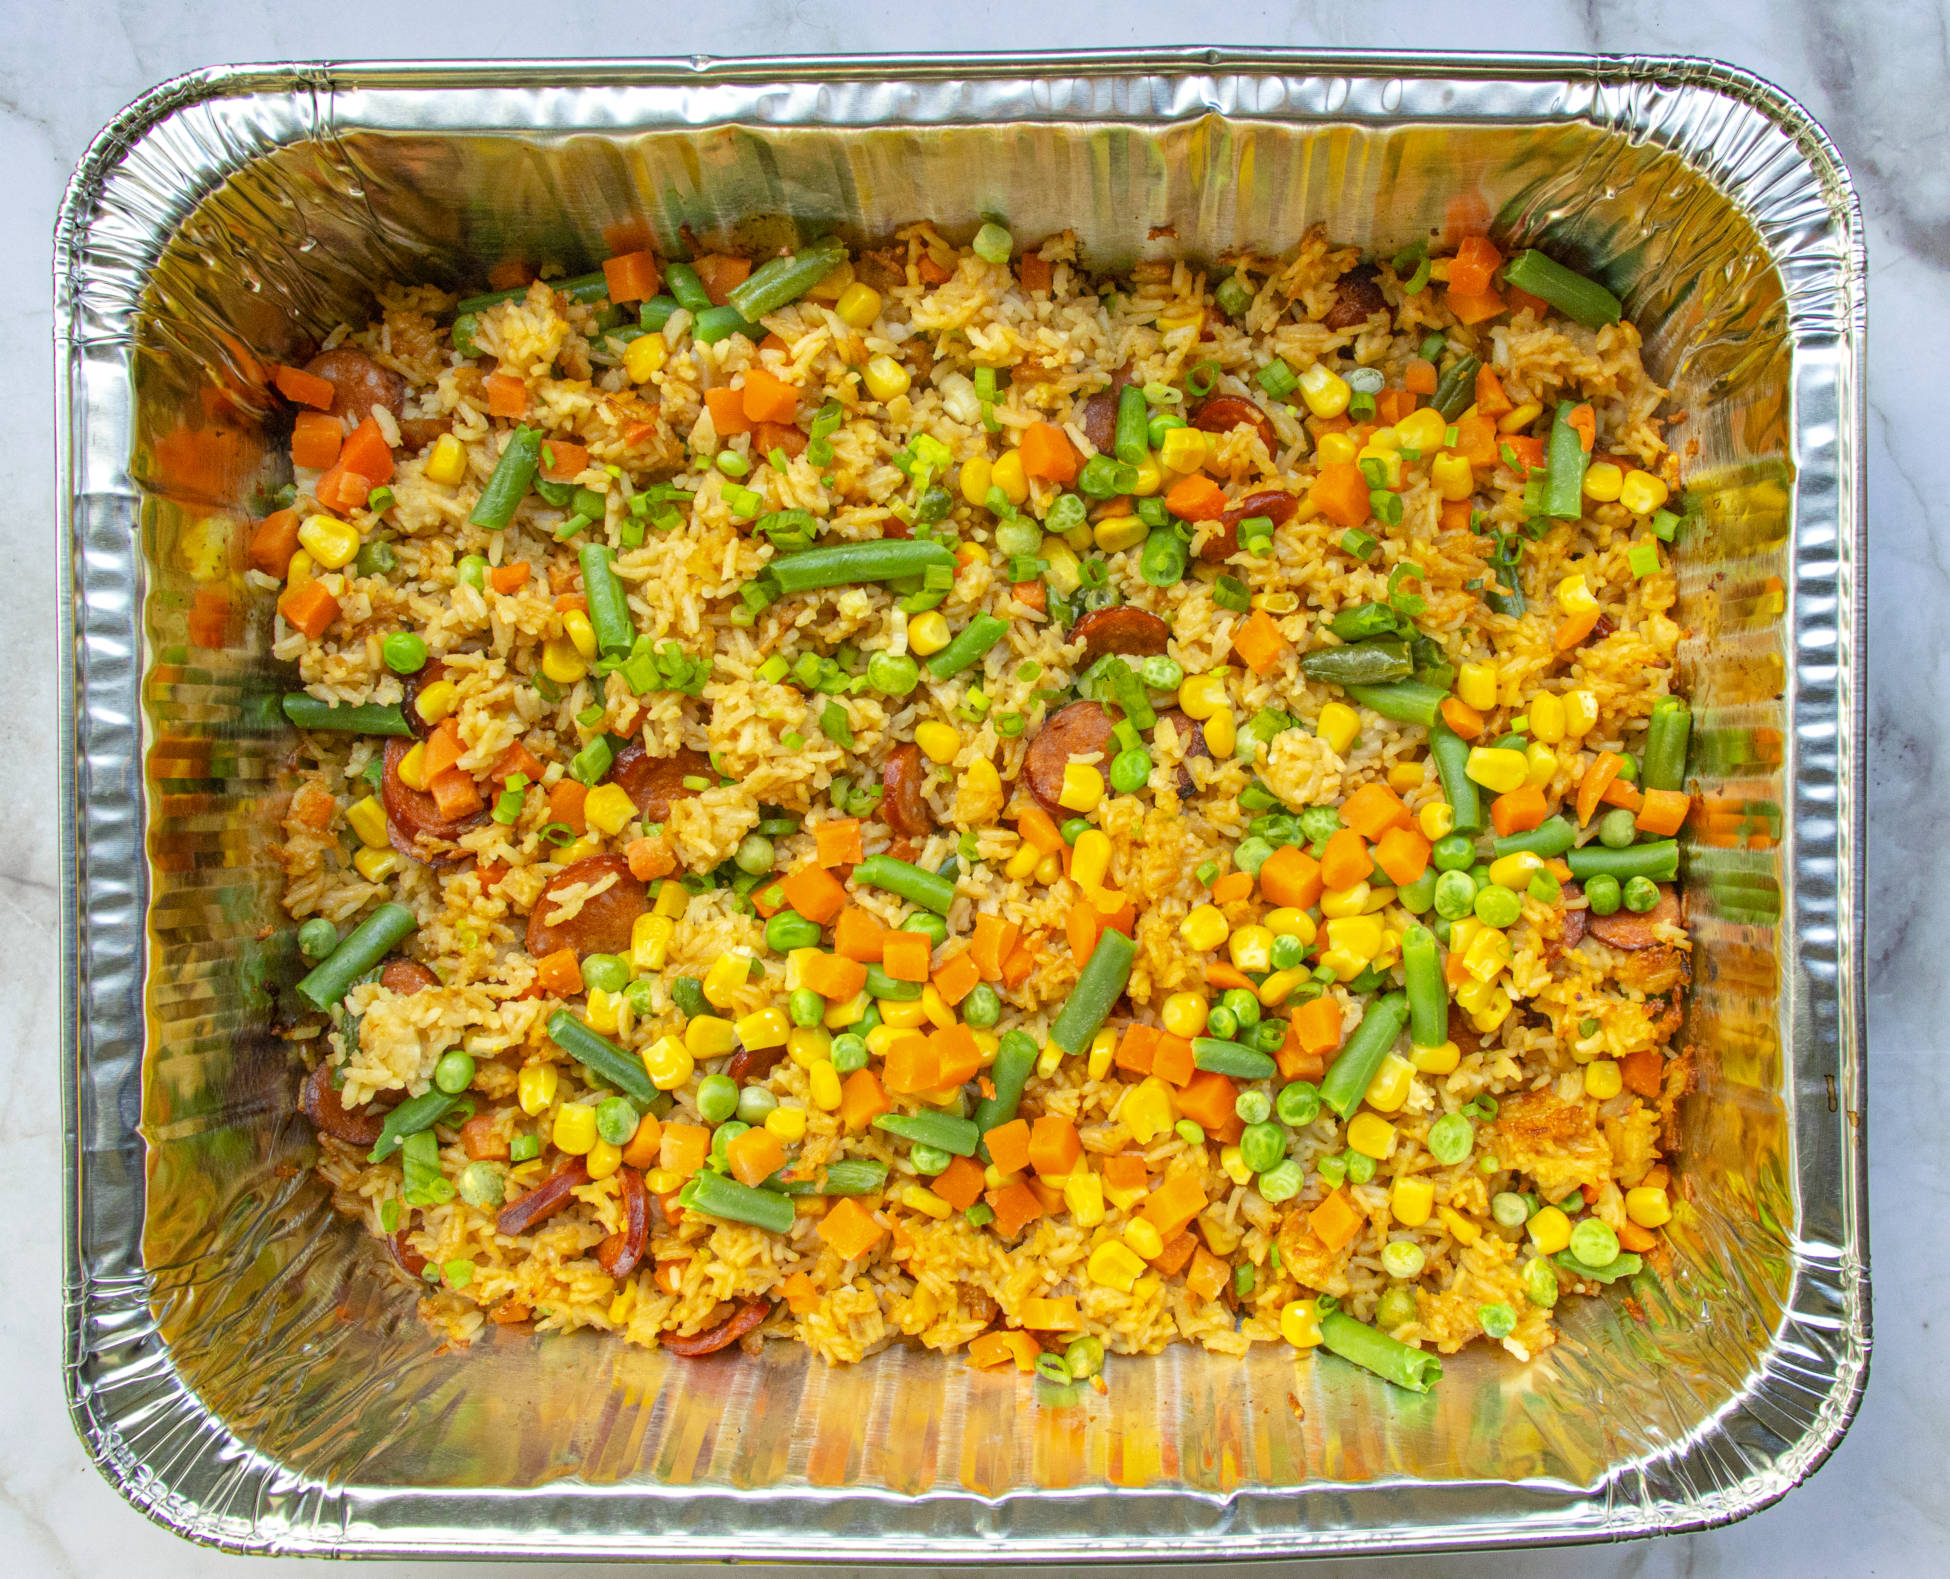 Baked Fried Rice in a steam table pan foil pan